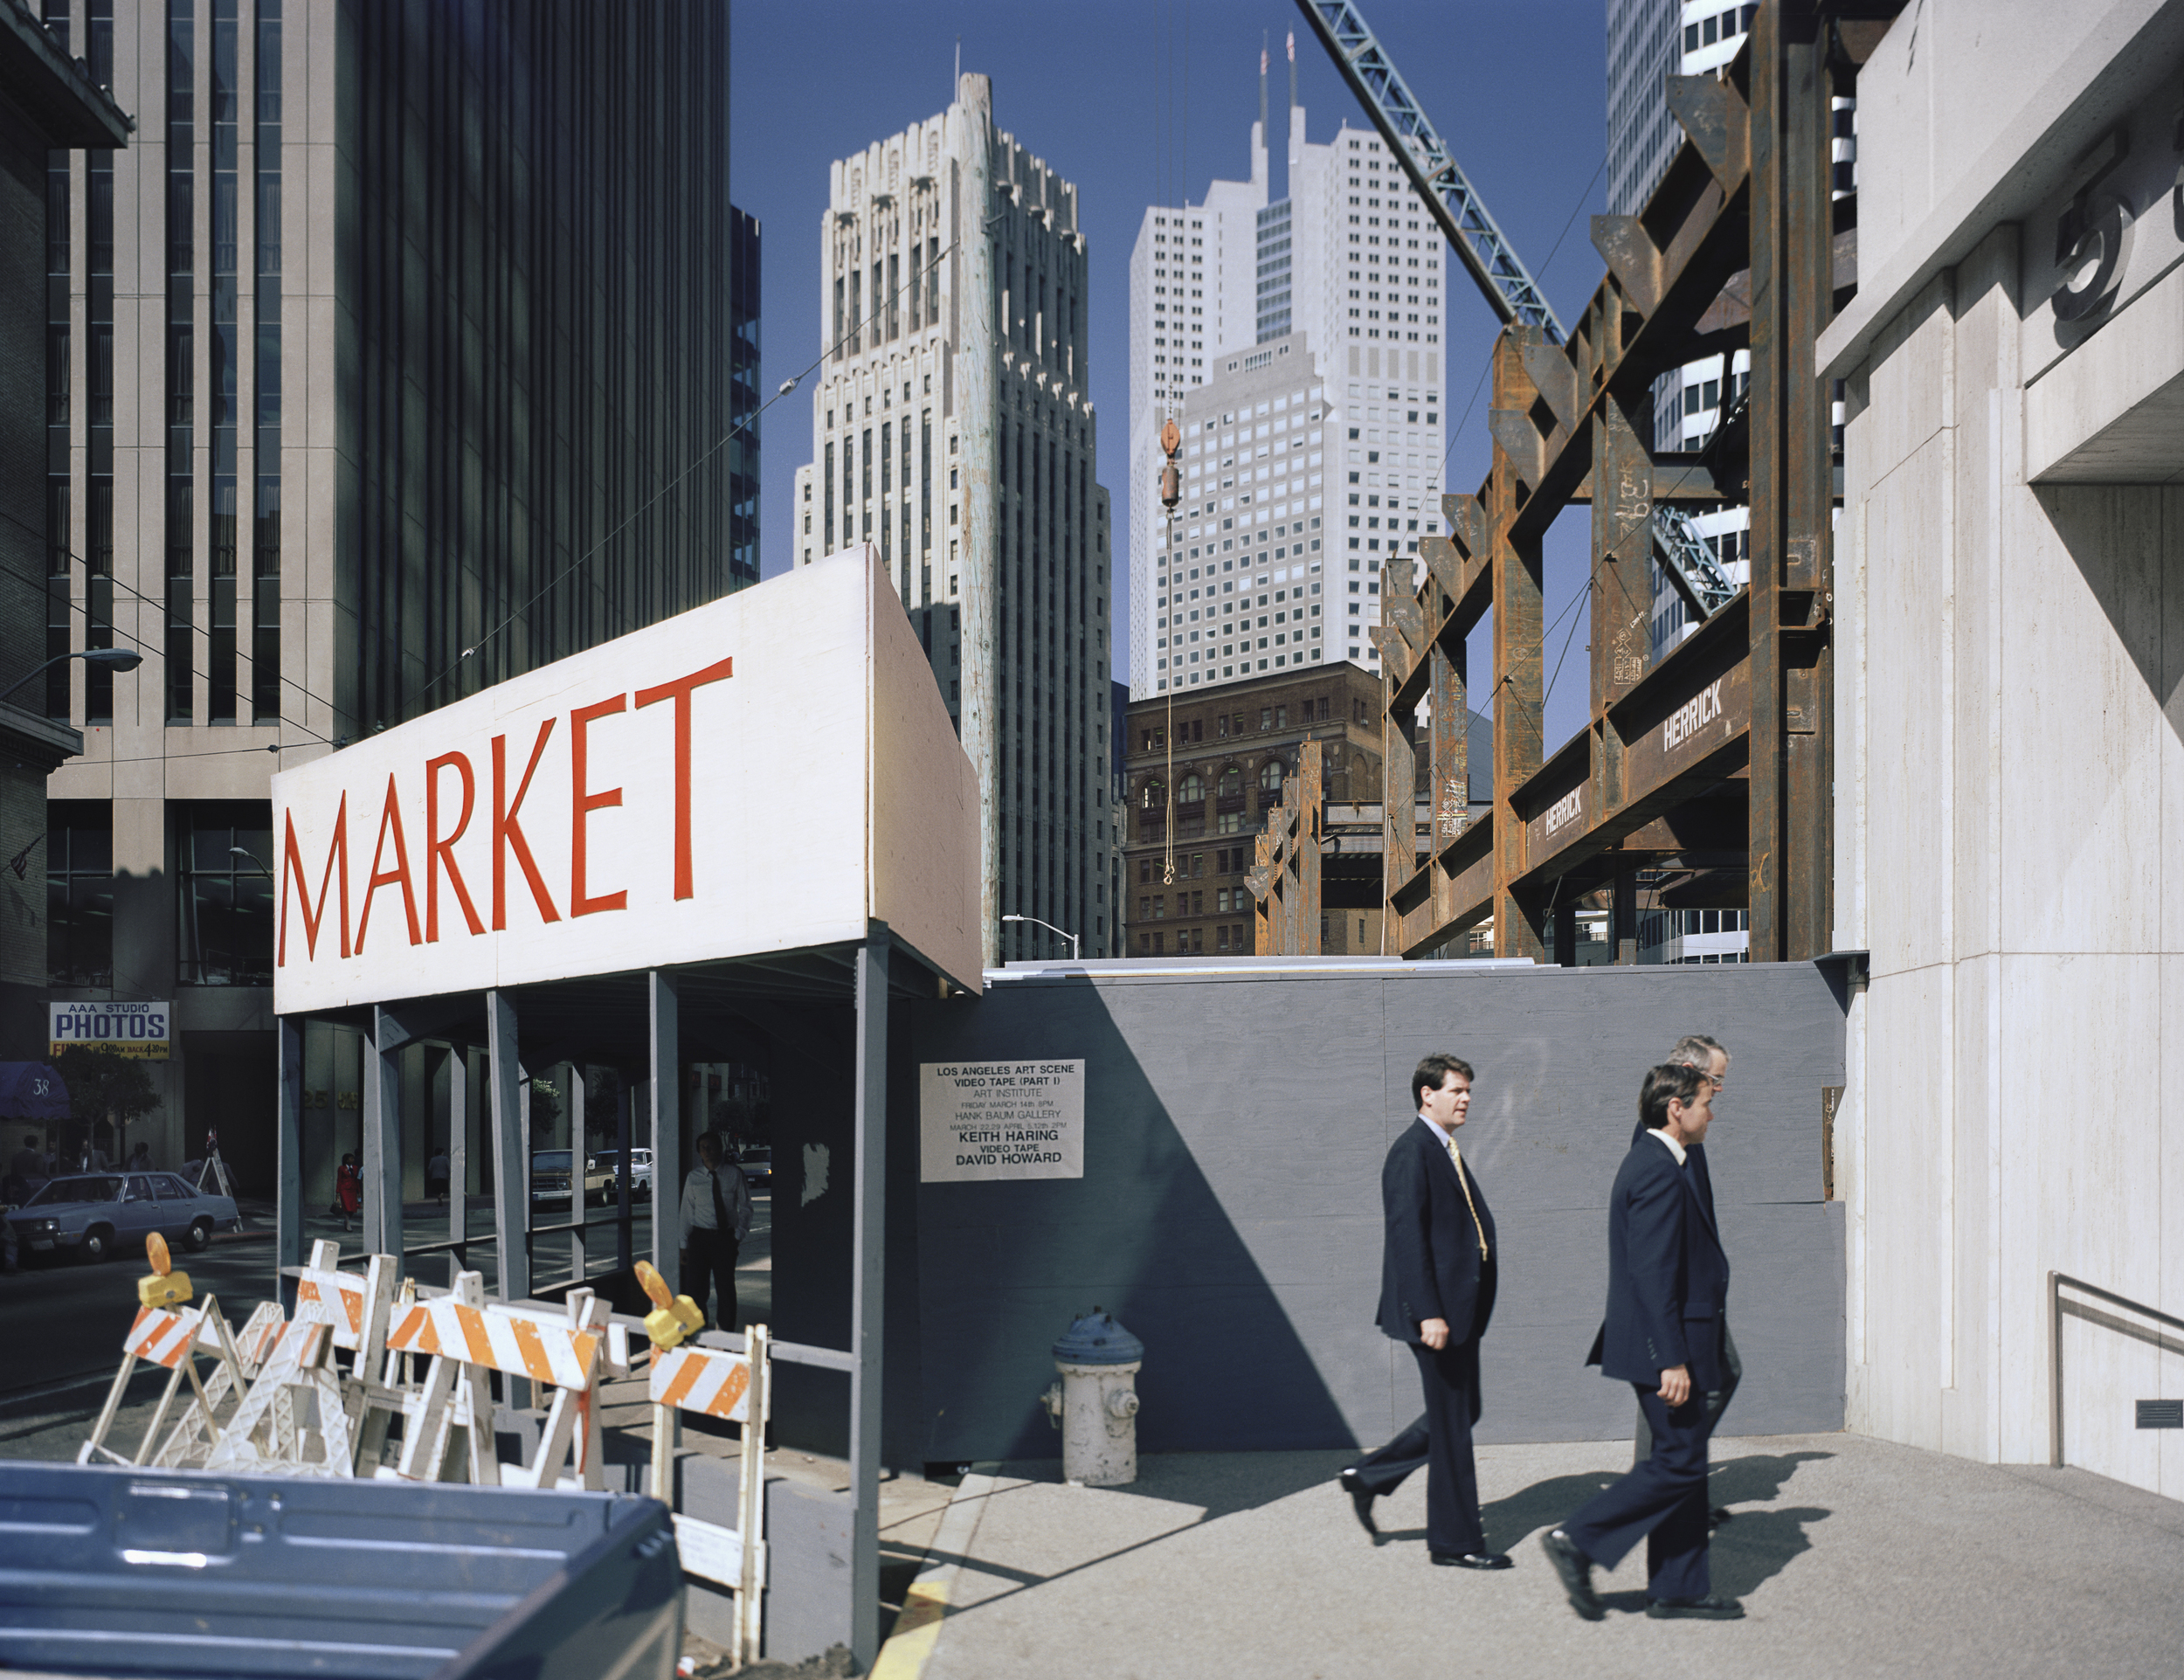 JANET DELANEY 2nd at Market Street, 1986 Archival Pigment Print, 2016 16 x 20 inches, edition of 5 20 x 24 inches, edition of 2 30 x 40 inches, edition of 2